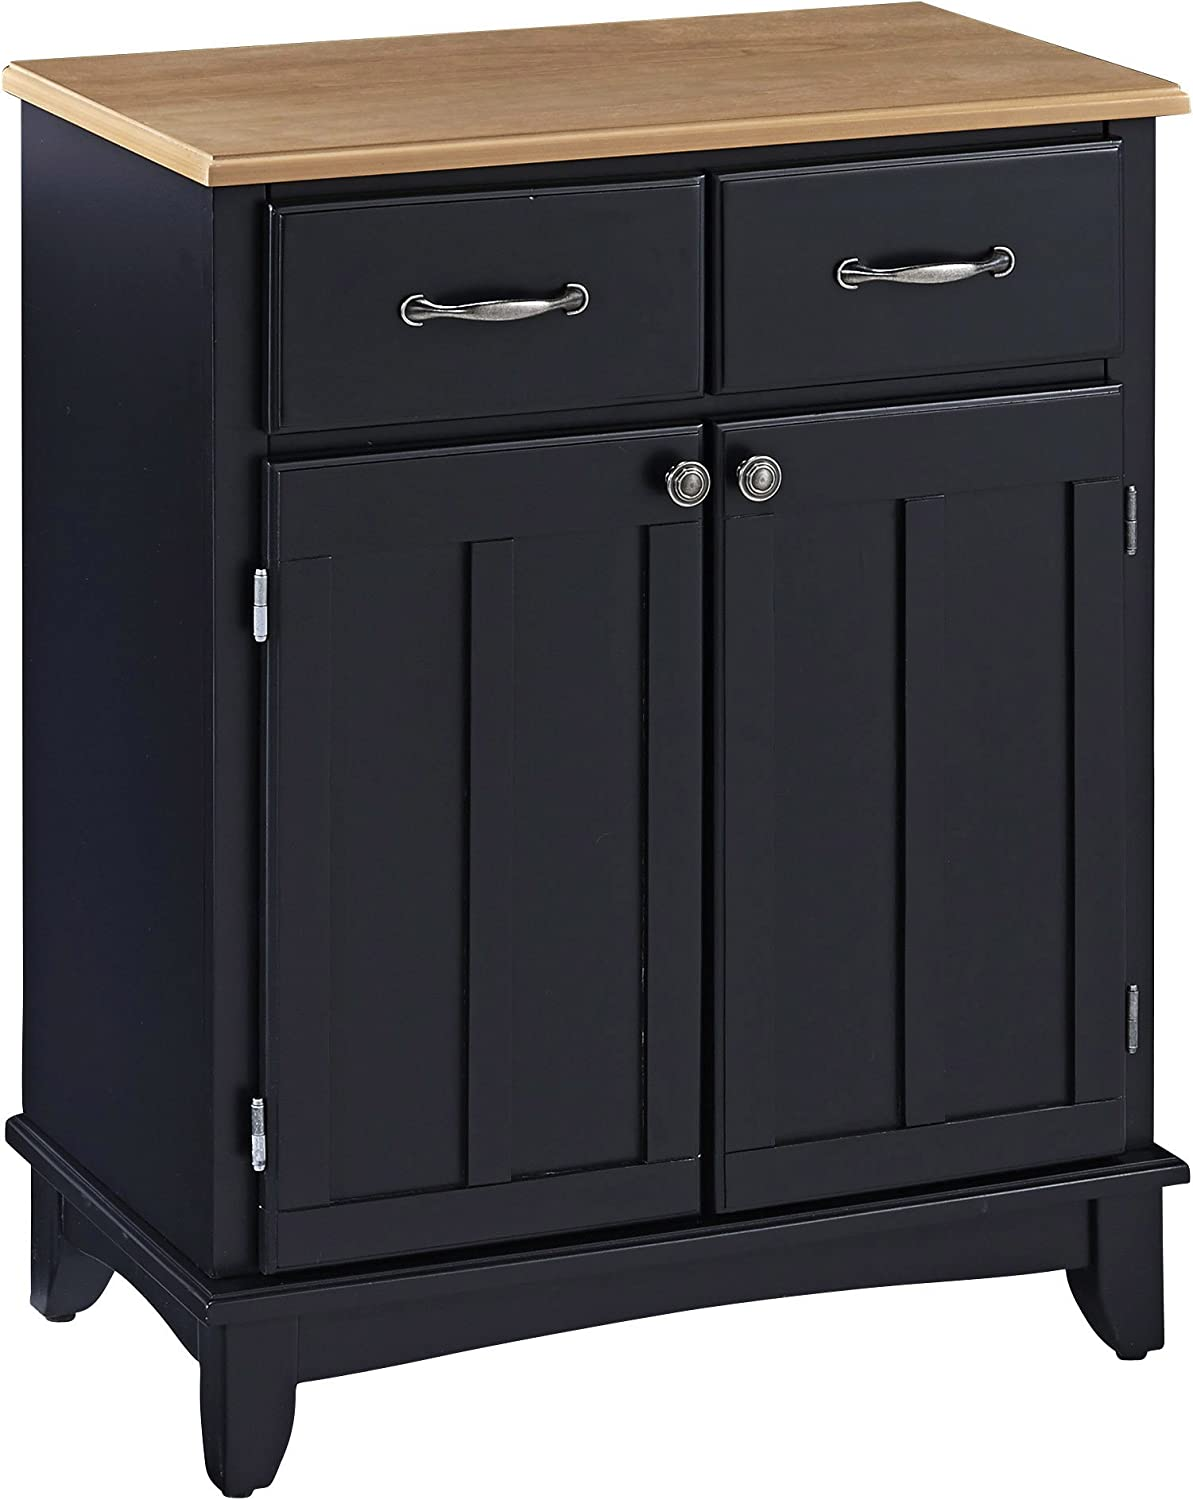 Buffet of Buffets Black with Wood Top by Home Styles